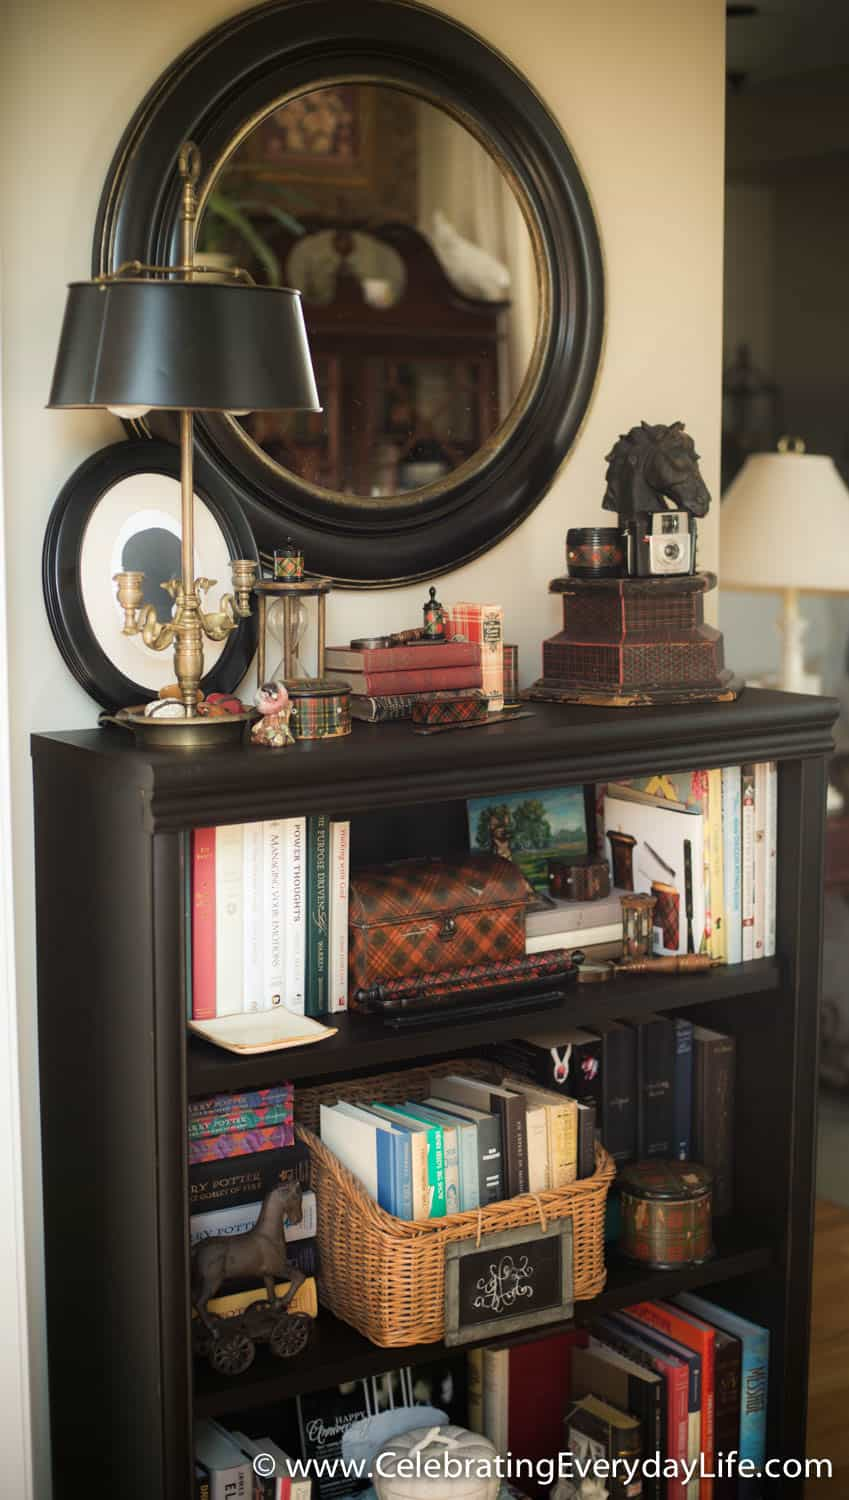 Bookshelf makeover with CeCe Caldwell paint and Tartanware accents